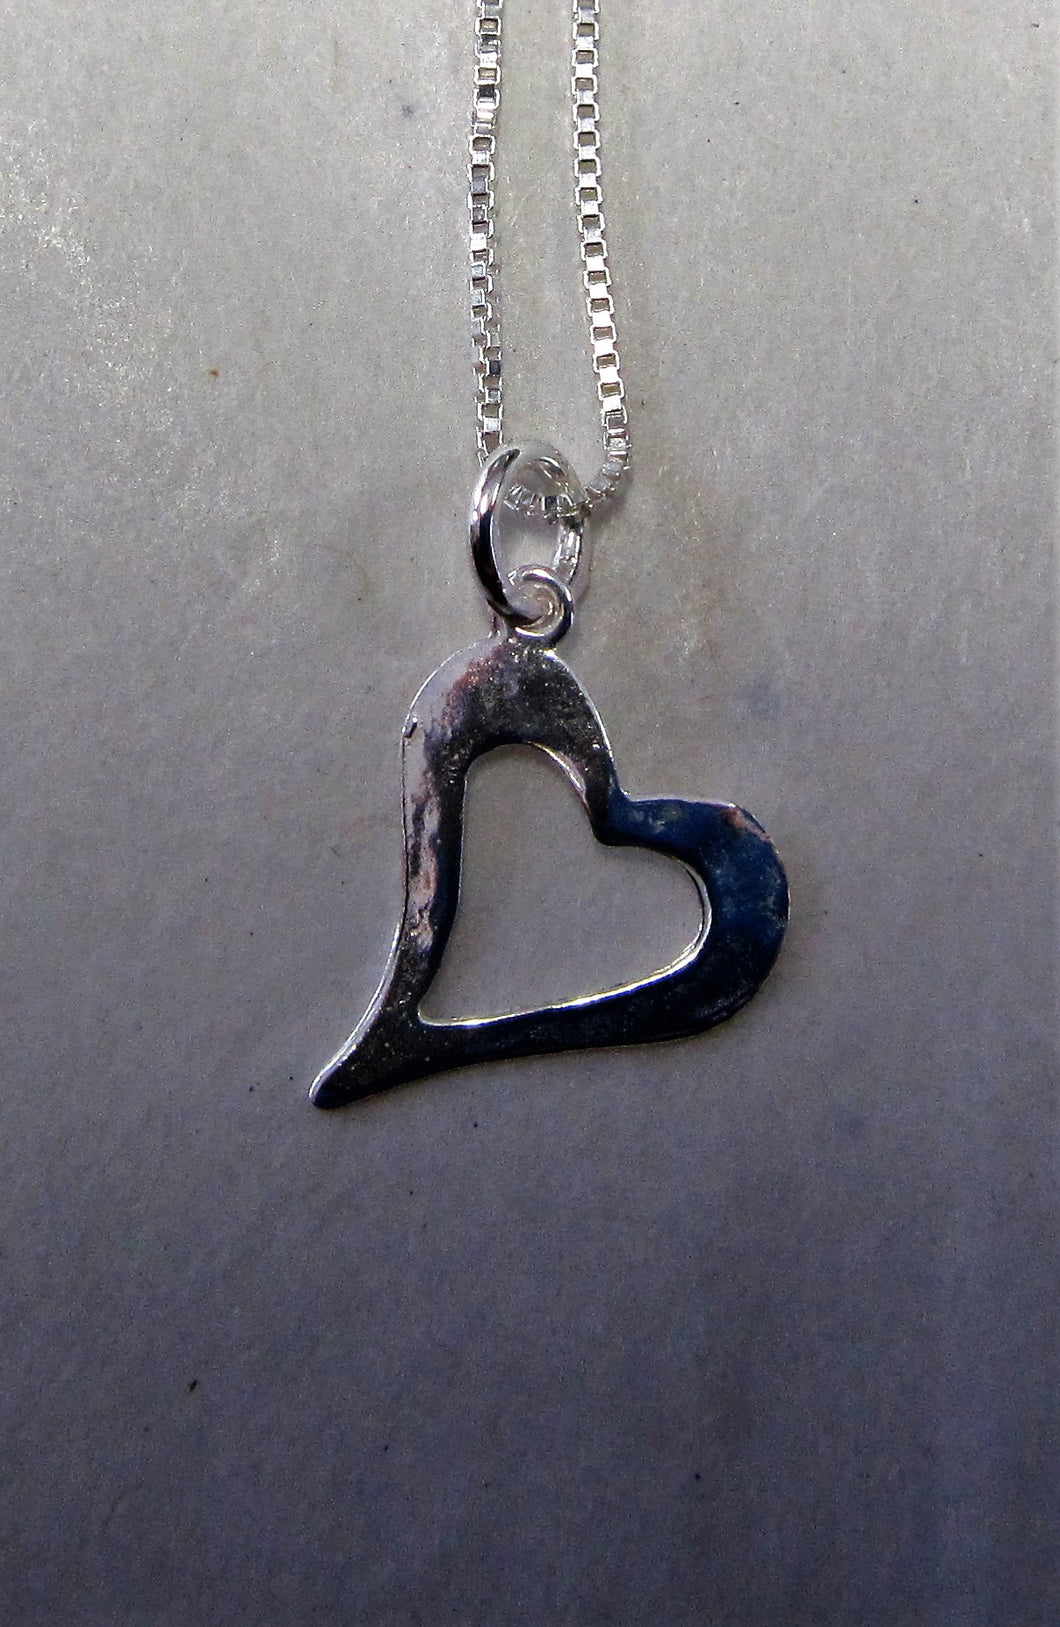 Handcrafted 925 sterling silver necklace heart pendant